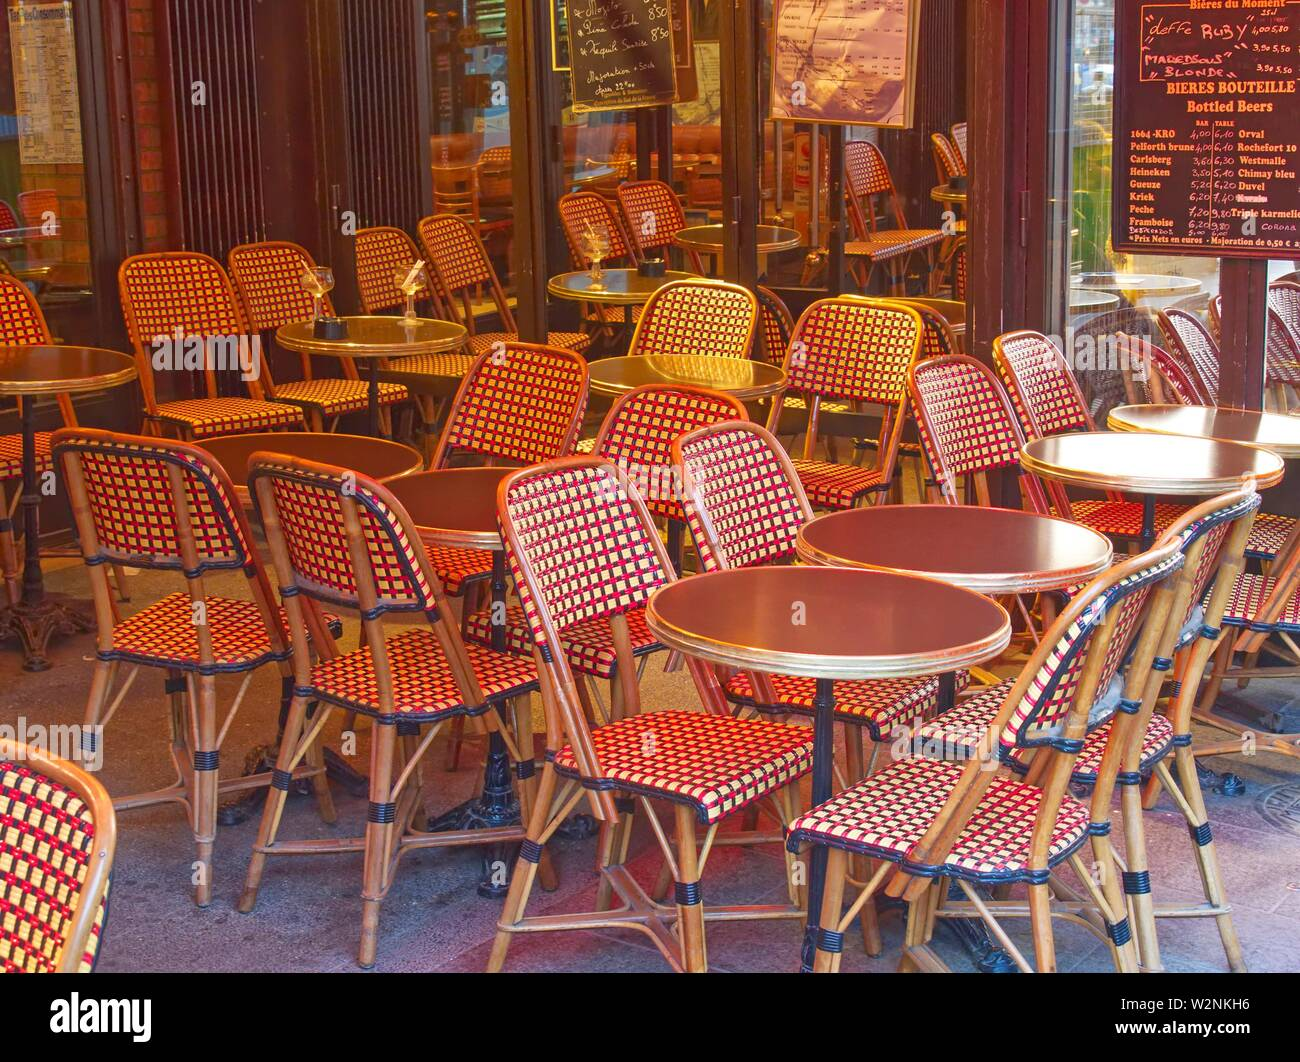 Page 3 Paris Cafe Table High Resolution Stock Photography And Images Alamy